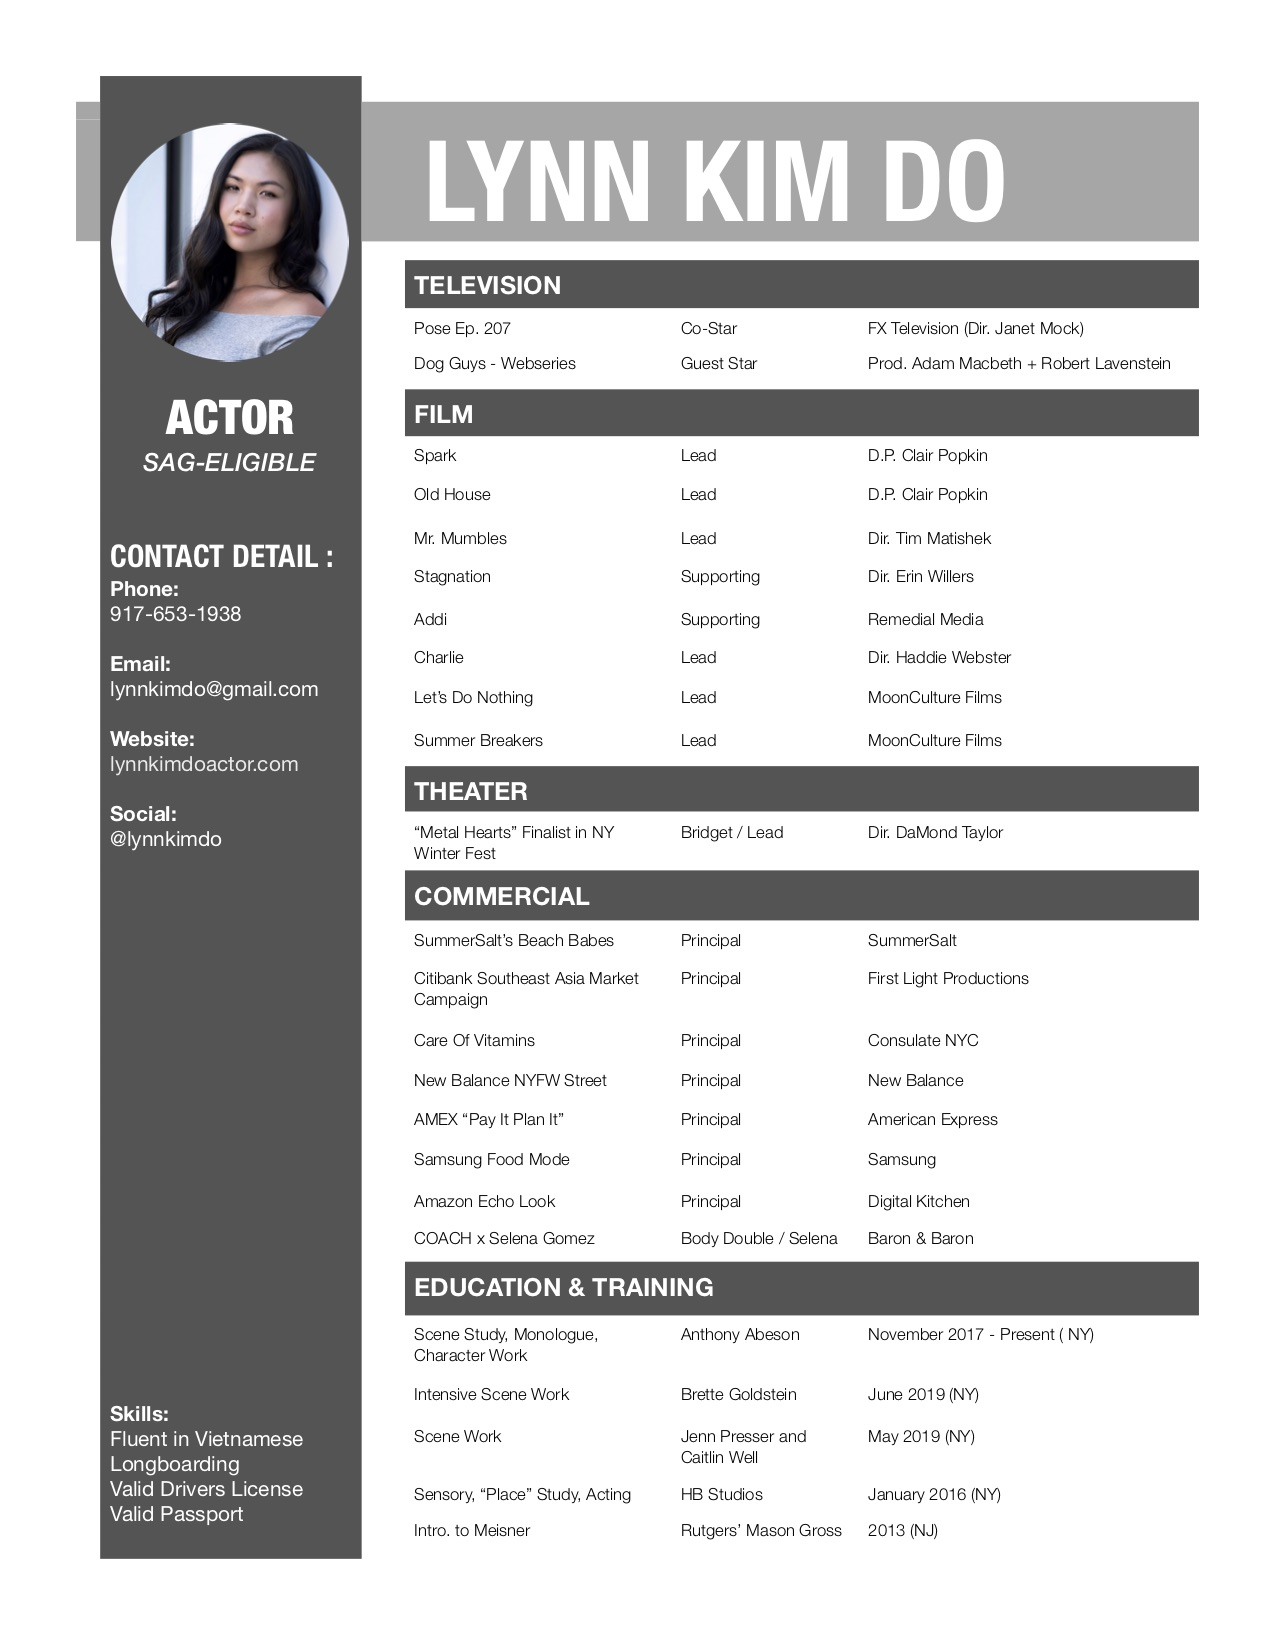 Lynn Kim Do - Actor Resume